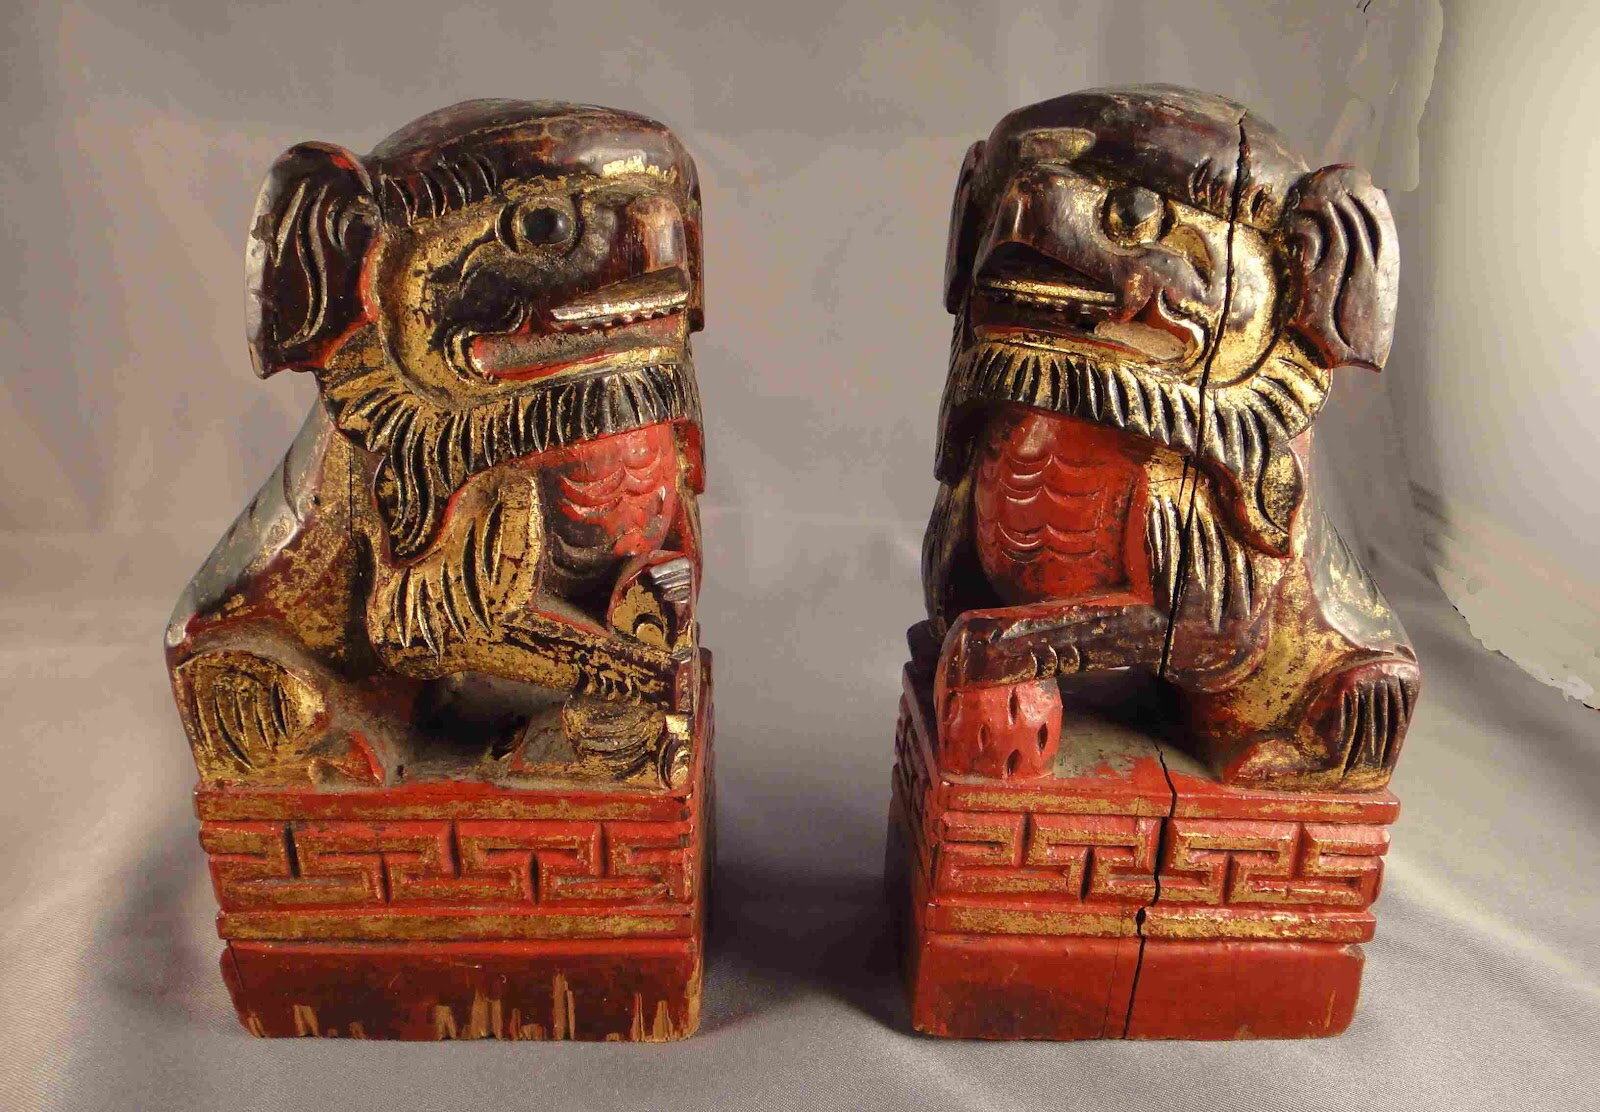 Antique Chinese Wooden Foo Dogs, via The Road To Parnassus.